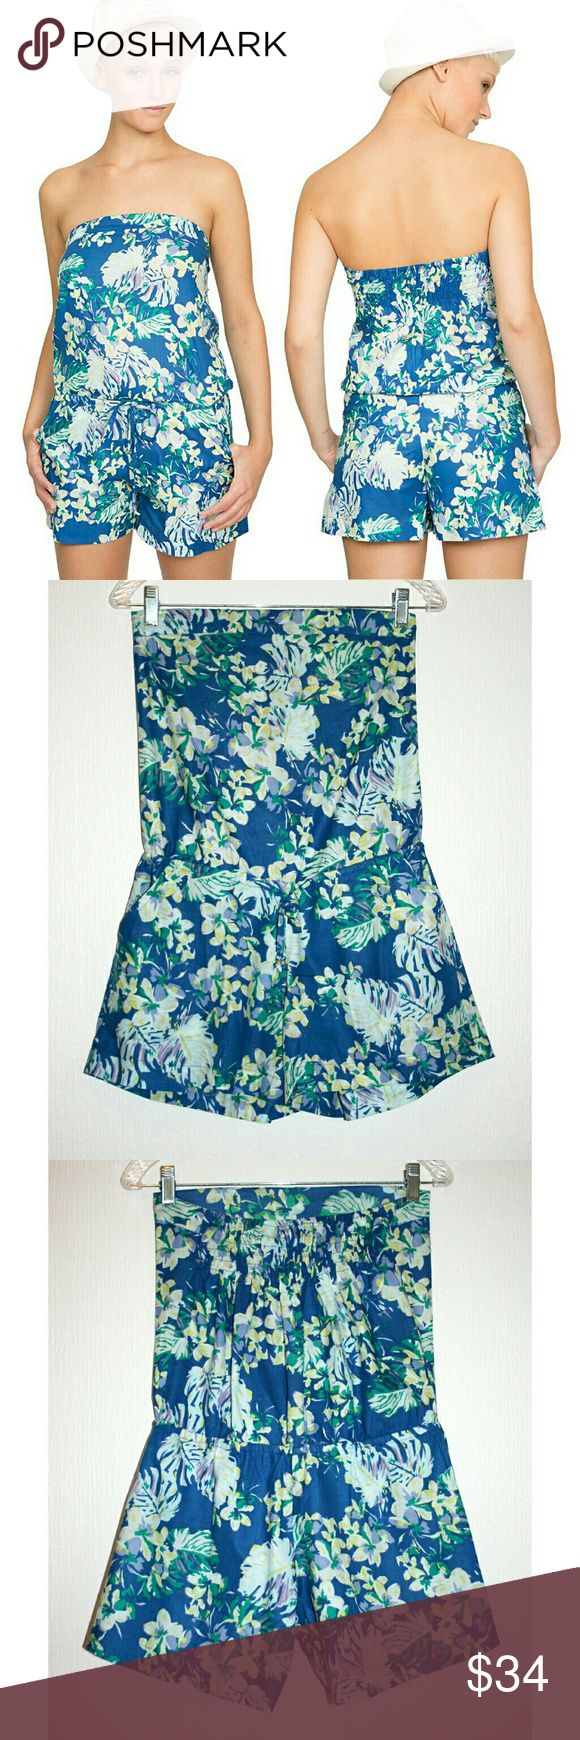 Floral & Fern Tropical Print Bandeau Playsuit NWT This tropical playsuit / romper is so stylish, cute and bright! It features an adjustable tie to chinch the waist, a bandeau neckline and pockets on the hips. The tie stings have silver metal detail on the ends. The back has a stretchy smocked/sheared panel to keep it fitted to the bust and held up nicely. The comfortable and lightweight fabric is 100% cotton, and should be washed to soften. I'm happy to provide measurements upon request…